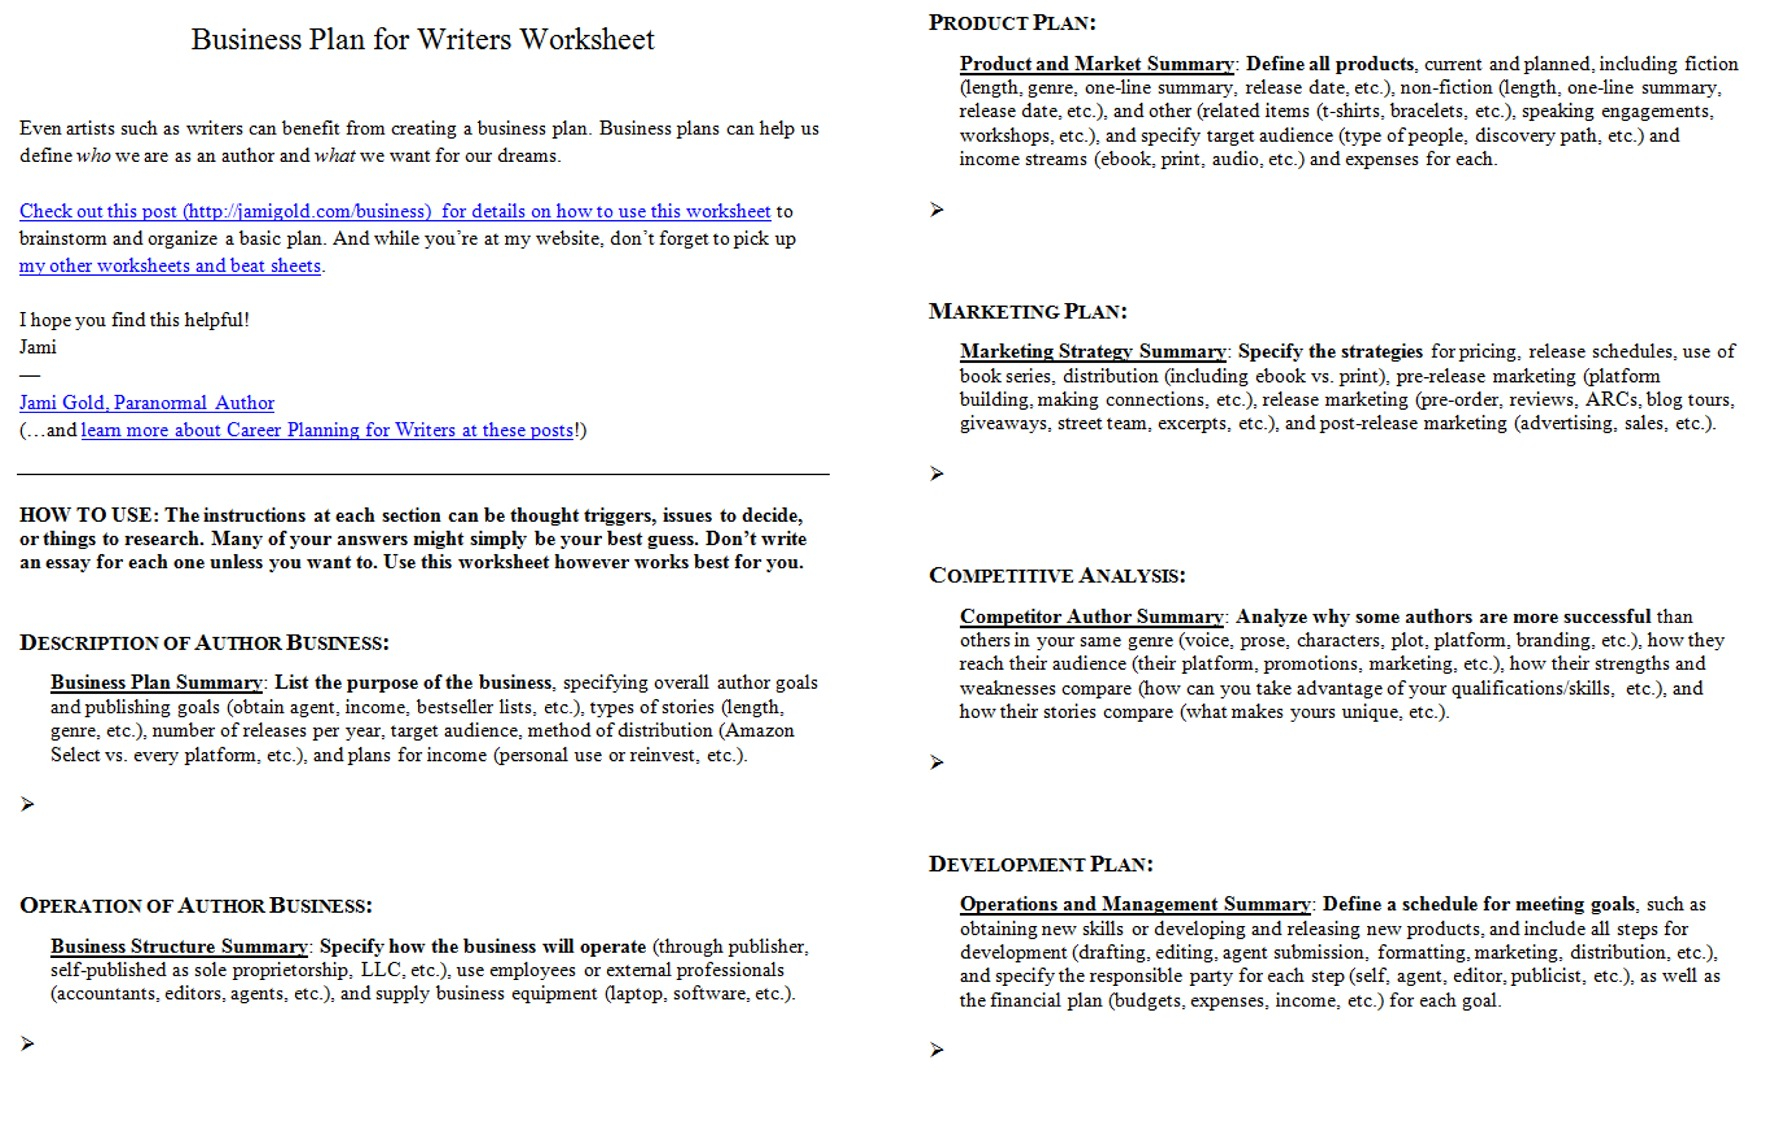 Aldiablosus  Unusual Worksheets For Writers  Jami Gold Paranormal Author With Great Screen Shot Of Both Pages Of The Business Plan For Writers Worksheet With Amazing Italian Worksheets Printable Also Language Arts Writing Worksheets In Addition Earth Rotation And Revolution Worksheet And Like Terms Worksheet Grade  As Well As Worksheet For Class  Science Additionally Verb Worksheets For Grade  From Jamigoldcom With Aldiablosus  Great Worksheets For Writers  Jami Gold Paranormal Author With Amazing Screen Shot Of Both Pages Of The Business Plan For Writers Worksheet And Unusual Italian Worksheets Printable Also Language Arts Writing Worksheets In Addition Earth Rotation And Revolution Worksheet From Jamigoldcom